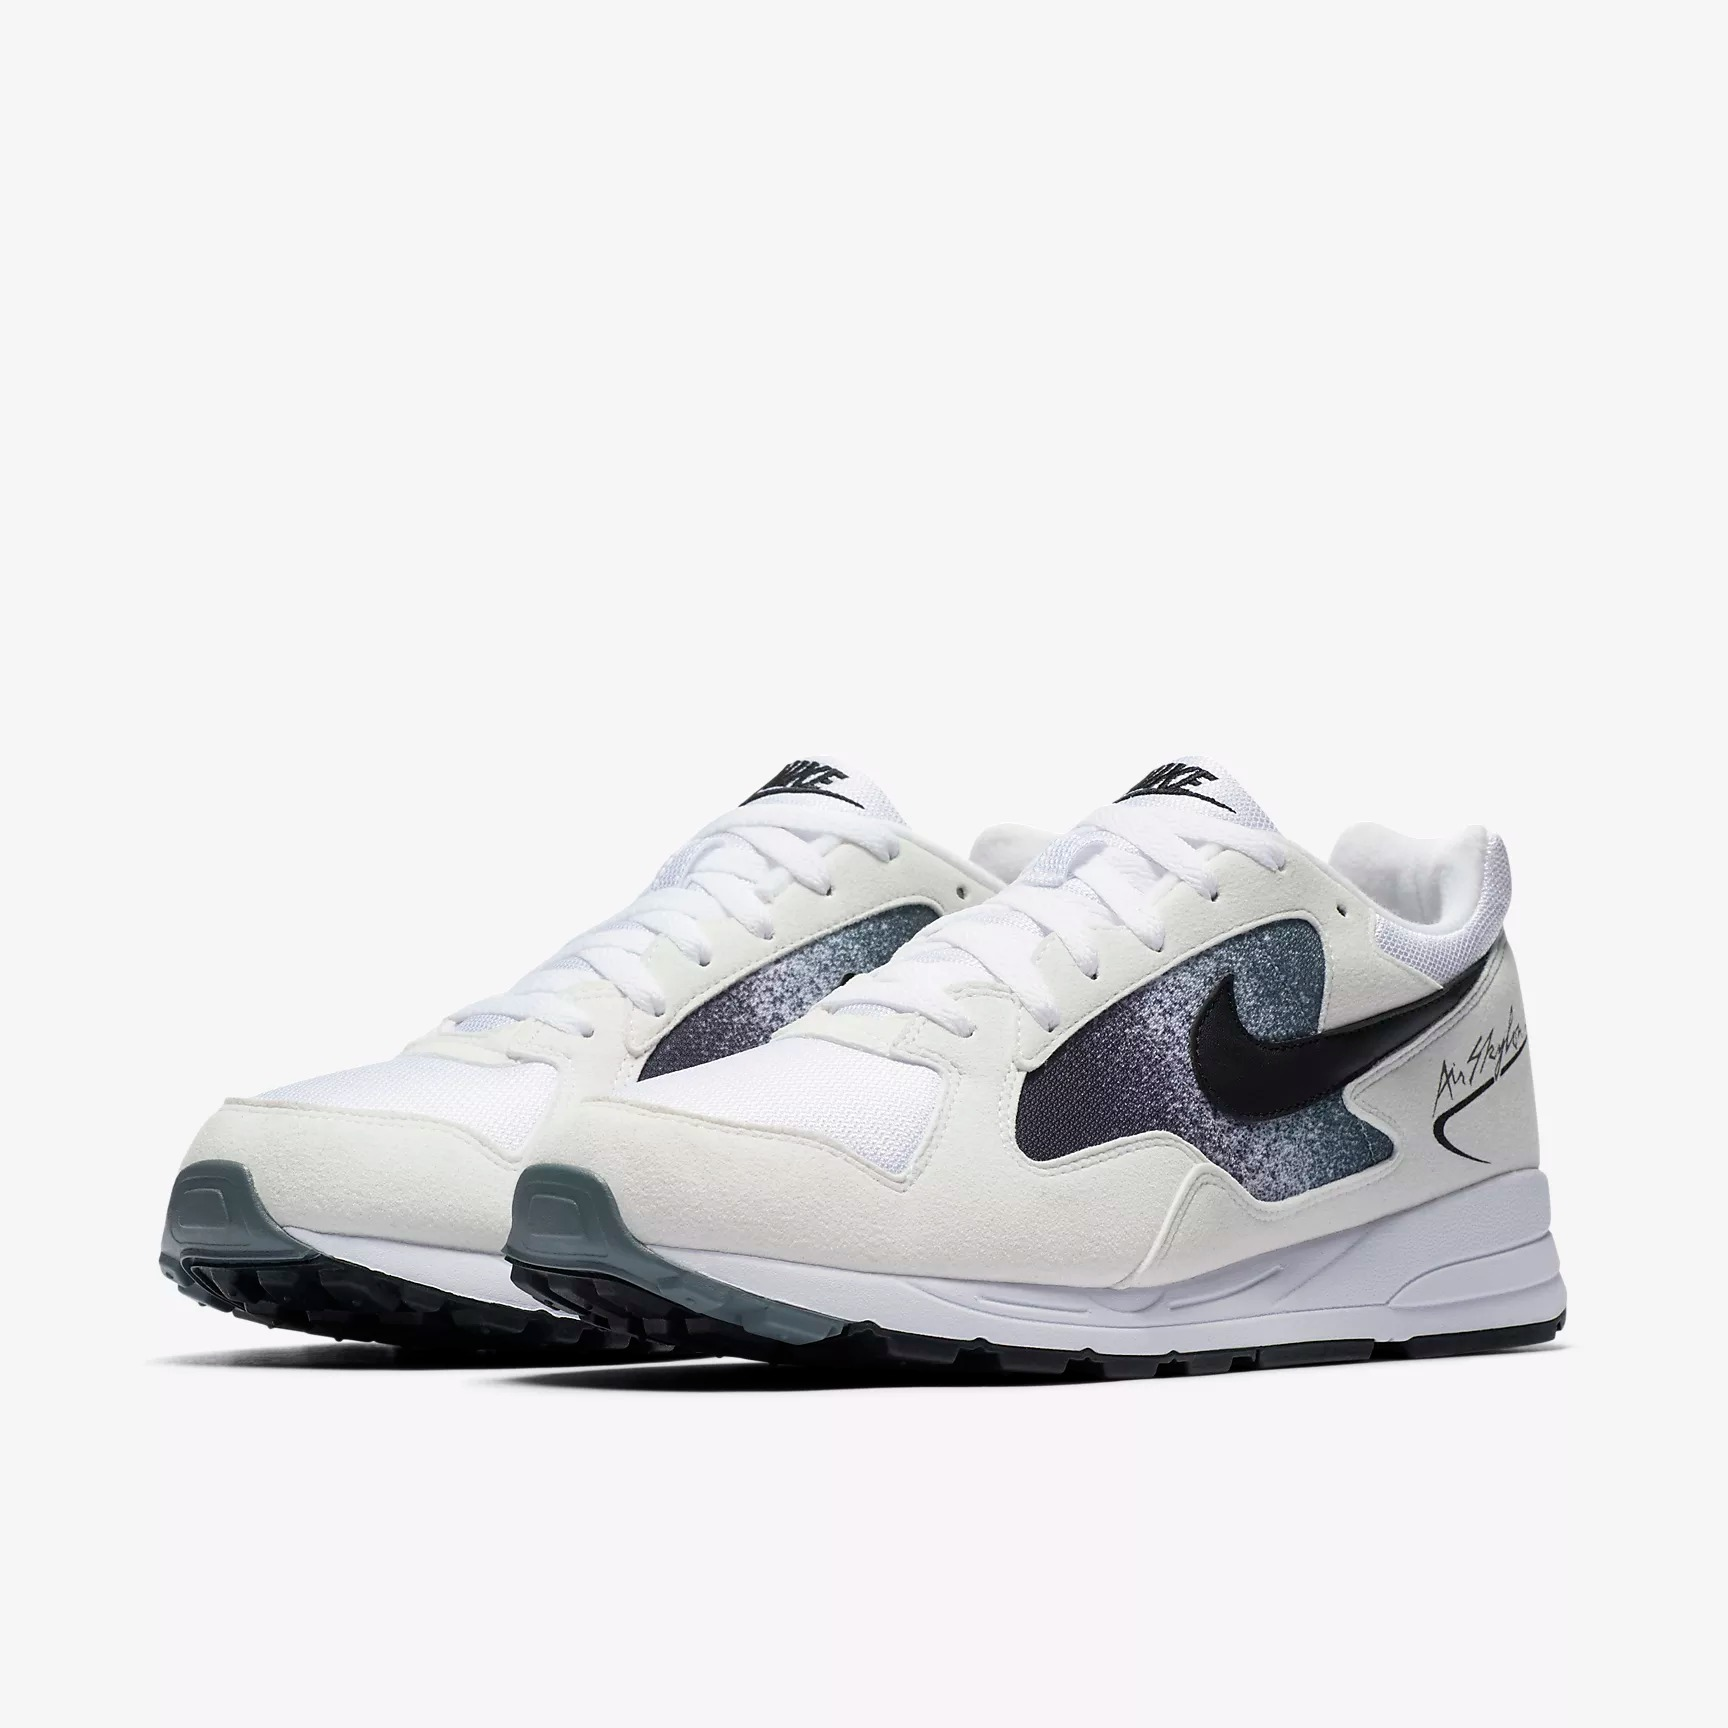 low priced e1c5b f3c9d Nike Air Skylon II Sneakers - SPORT SHOES Lifestyle Shoes  Sneakers -  Superfanas.lt